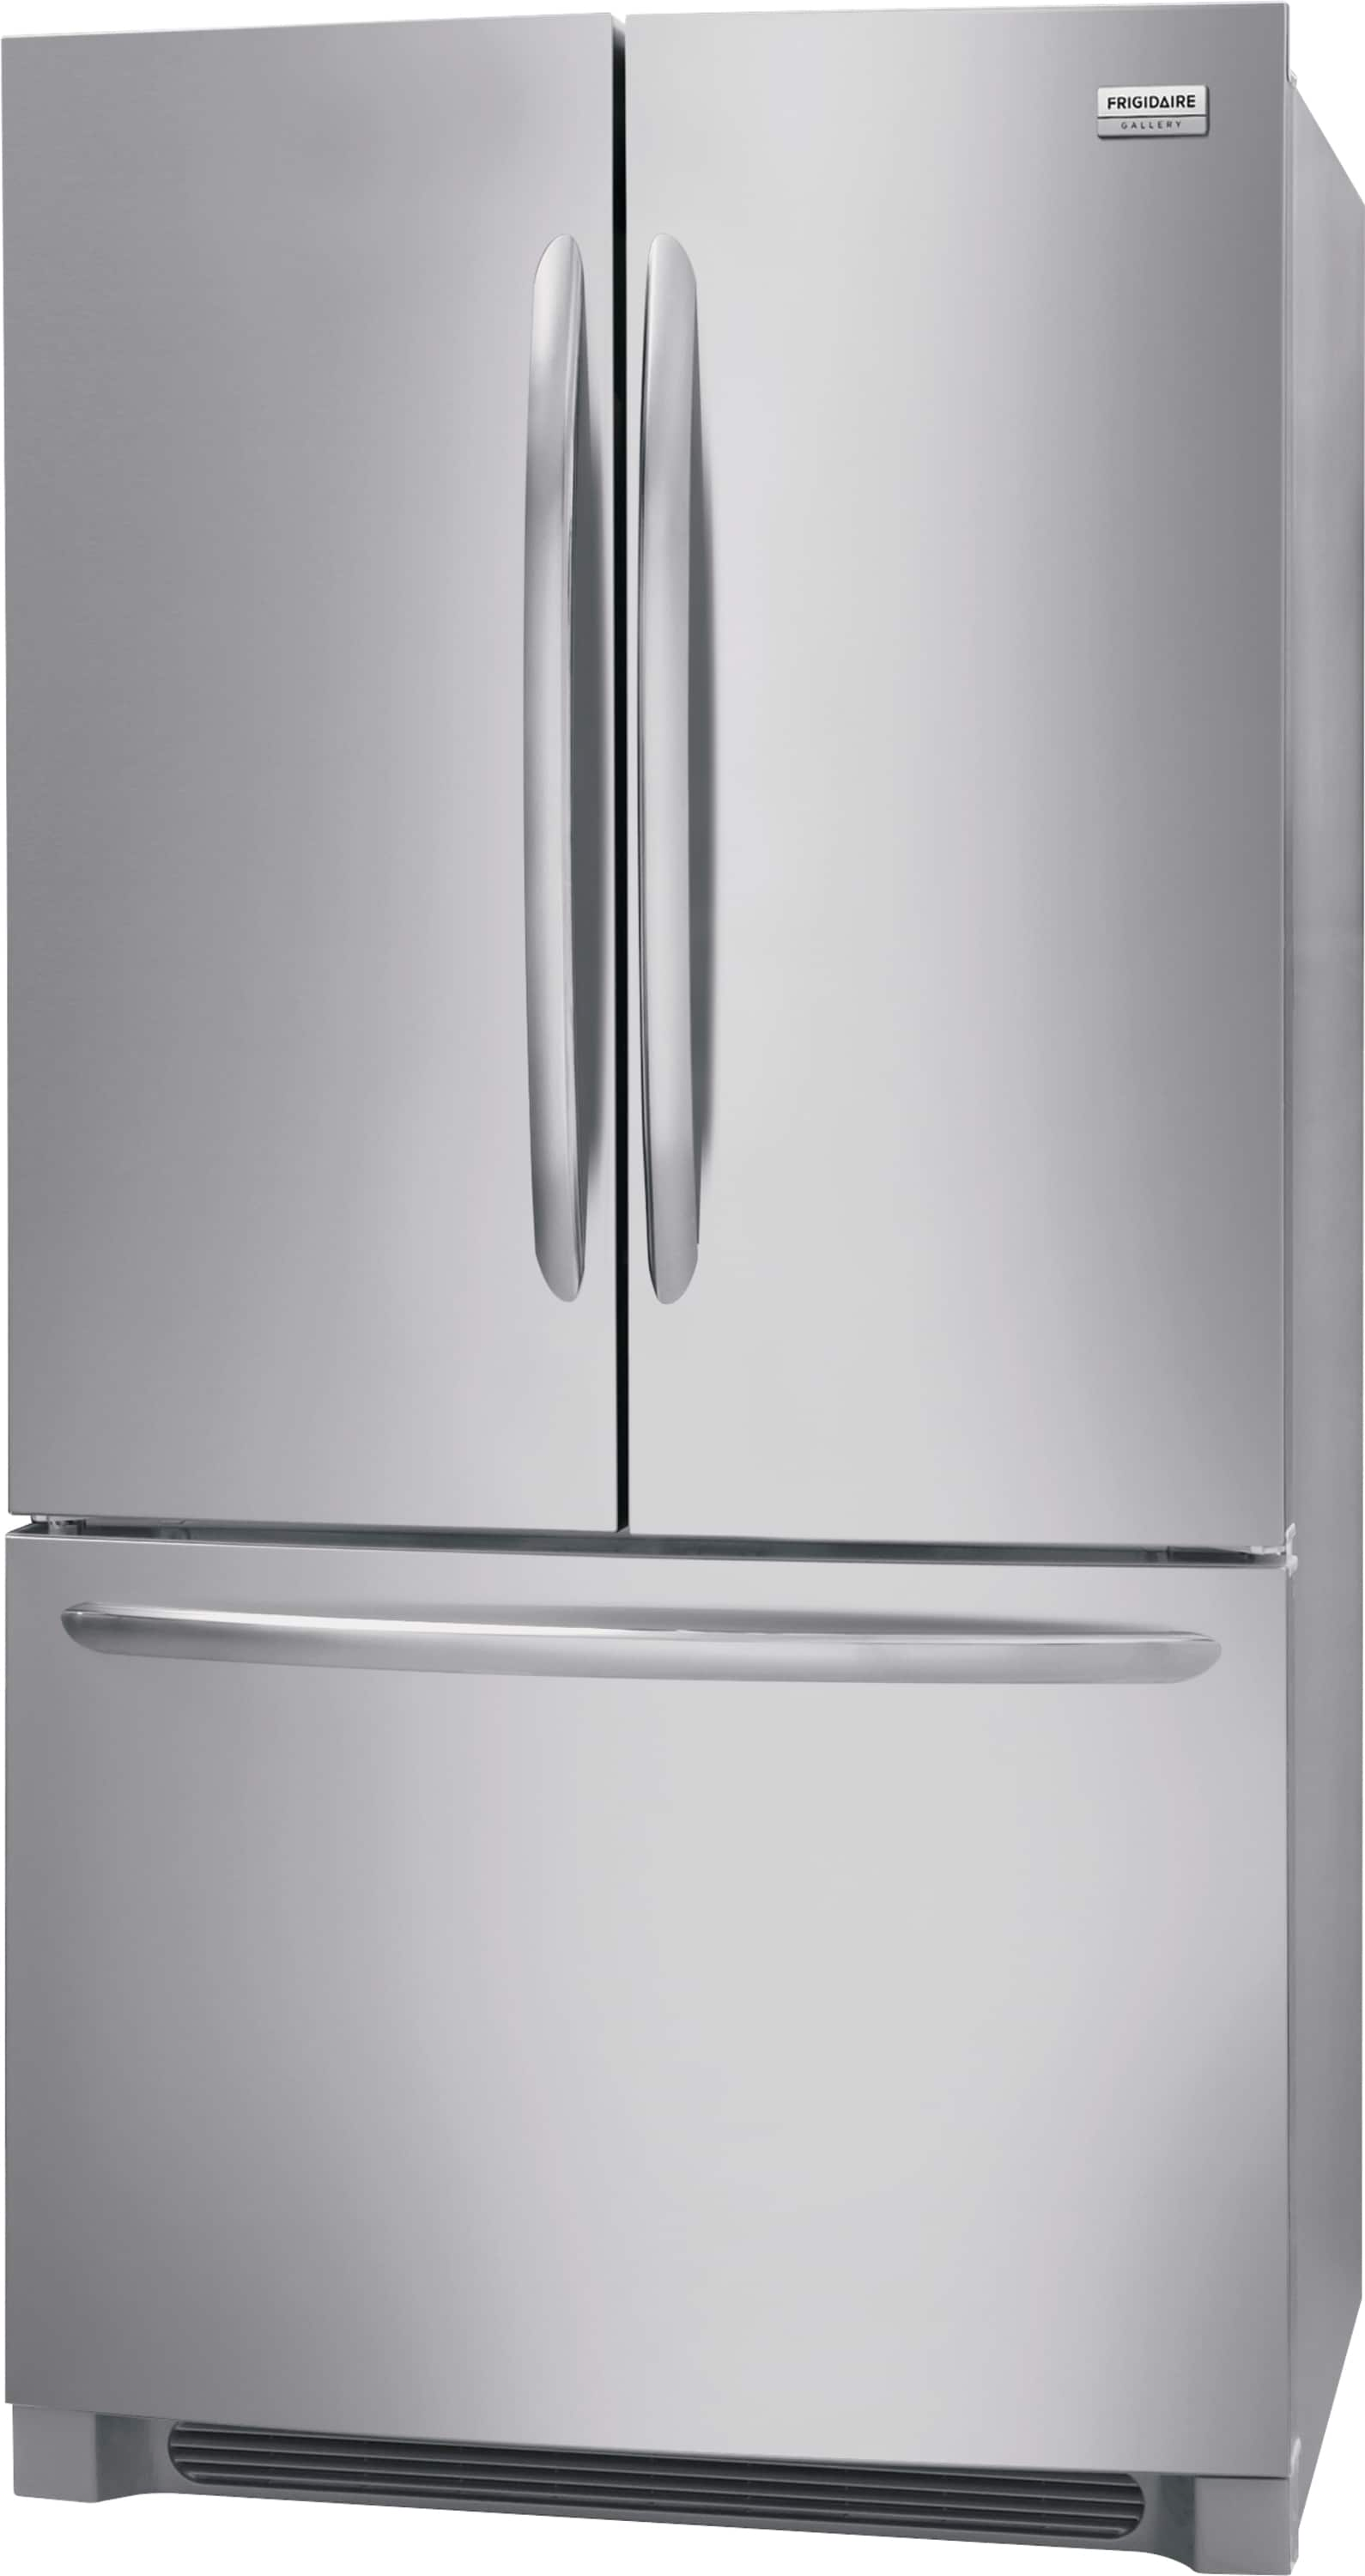 Model: FGHN2868TF | 27.6 Cu. Ft. French Door Refrigerator